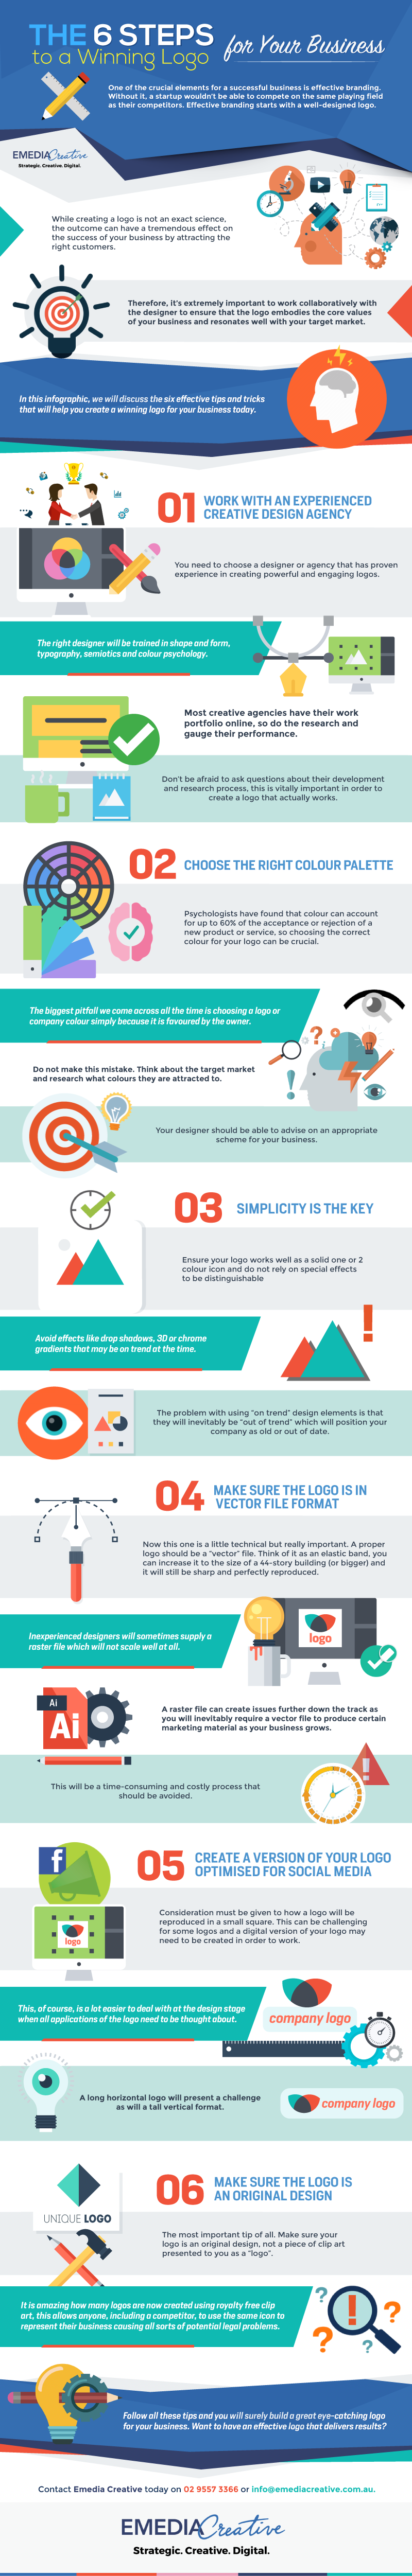 The 6 Steps To A Winning Logo For Your Business